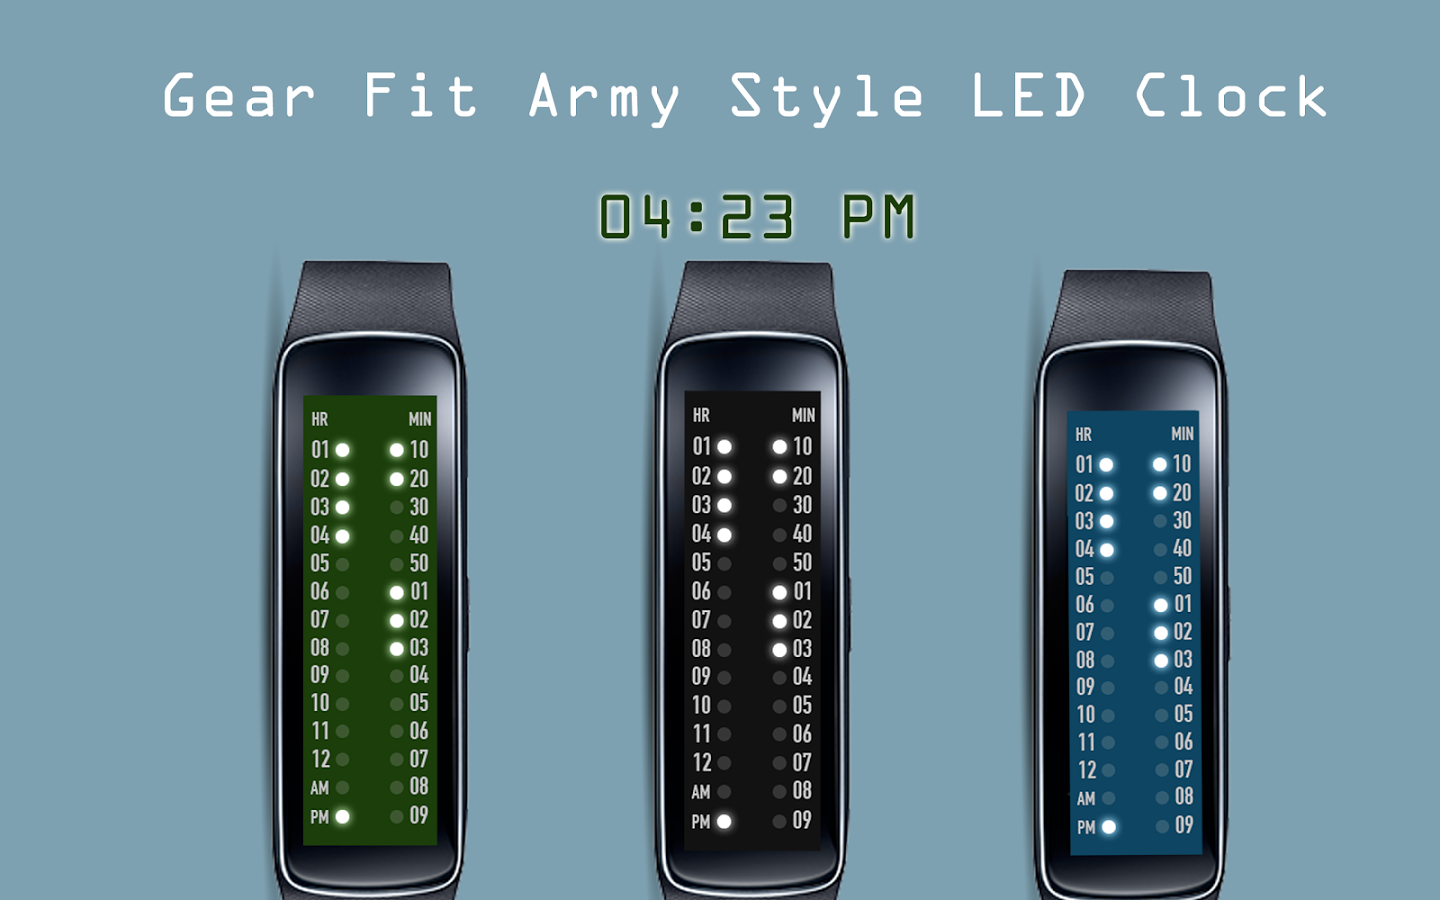 Gear Fit Army Style LED Clock App Ranking And Store Data